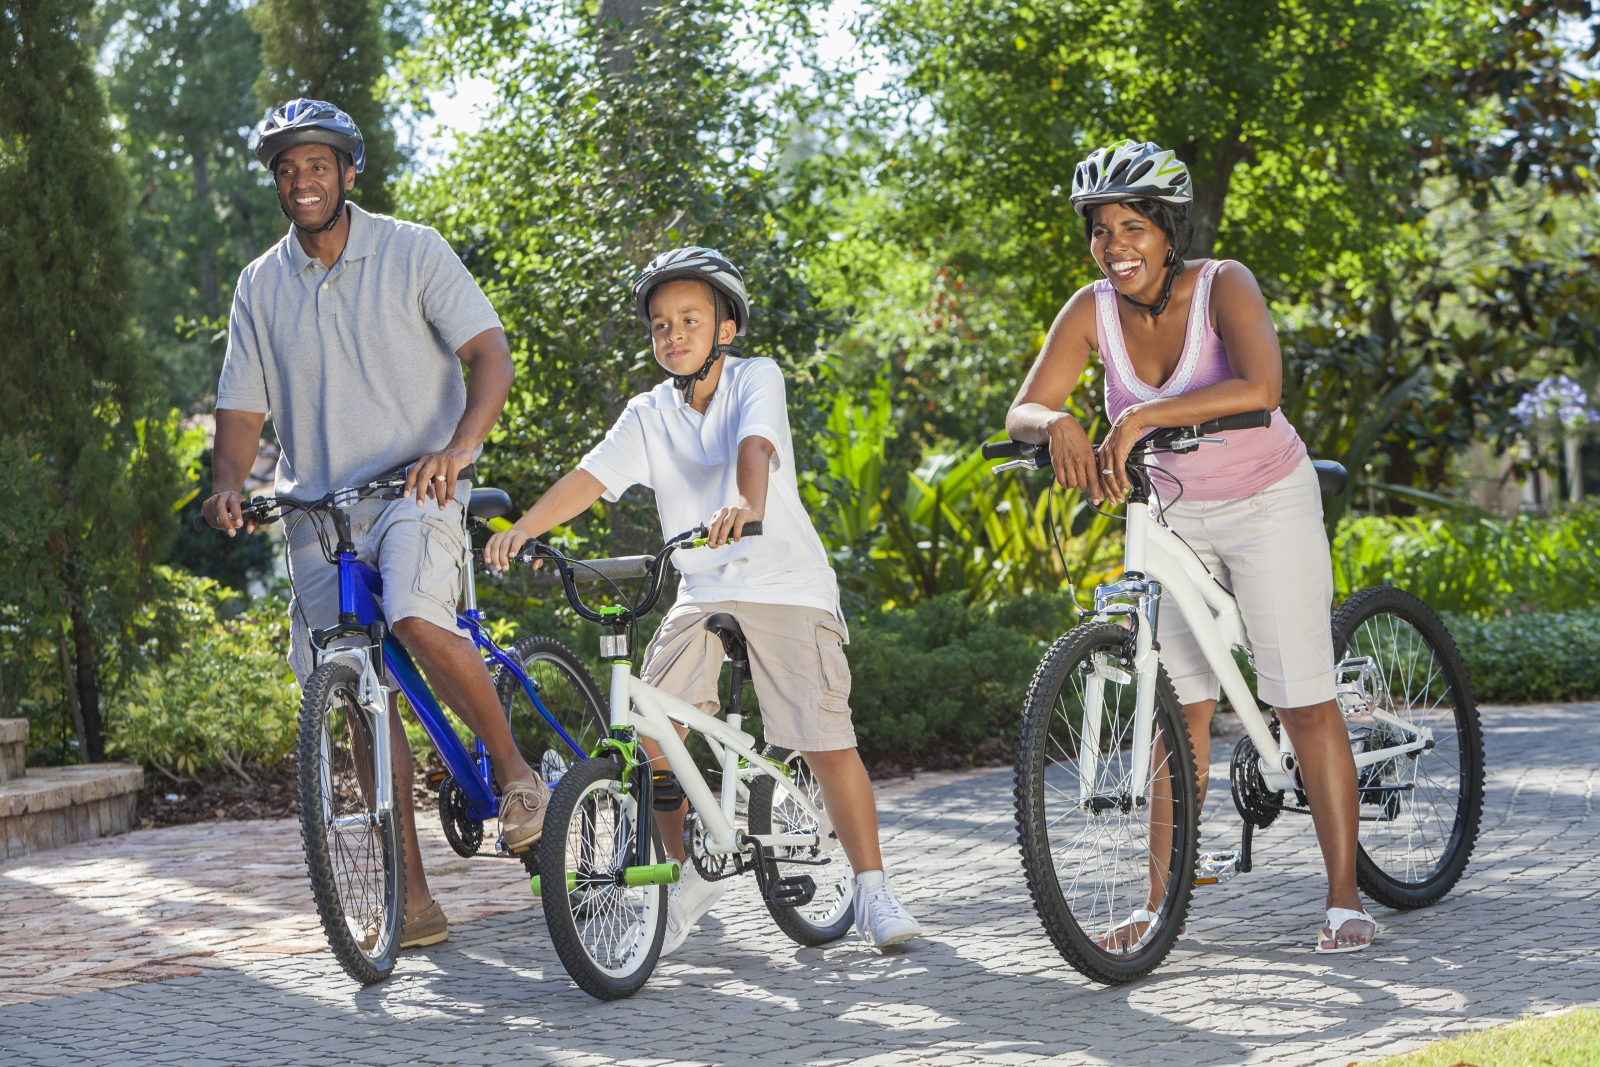 Mom, dad, & son on bikes wearing helmets shutterstock_117289561.jpg